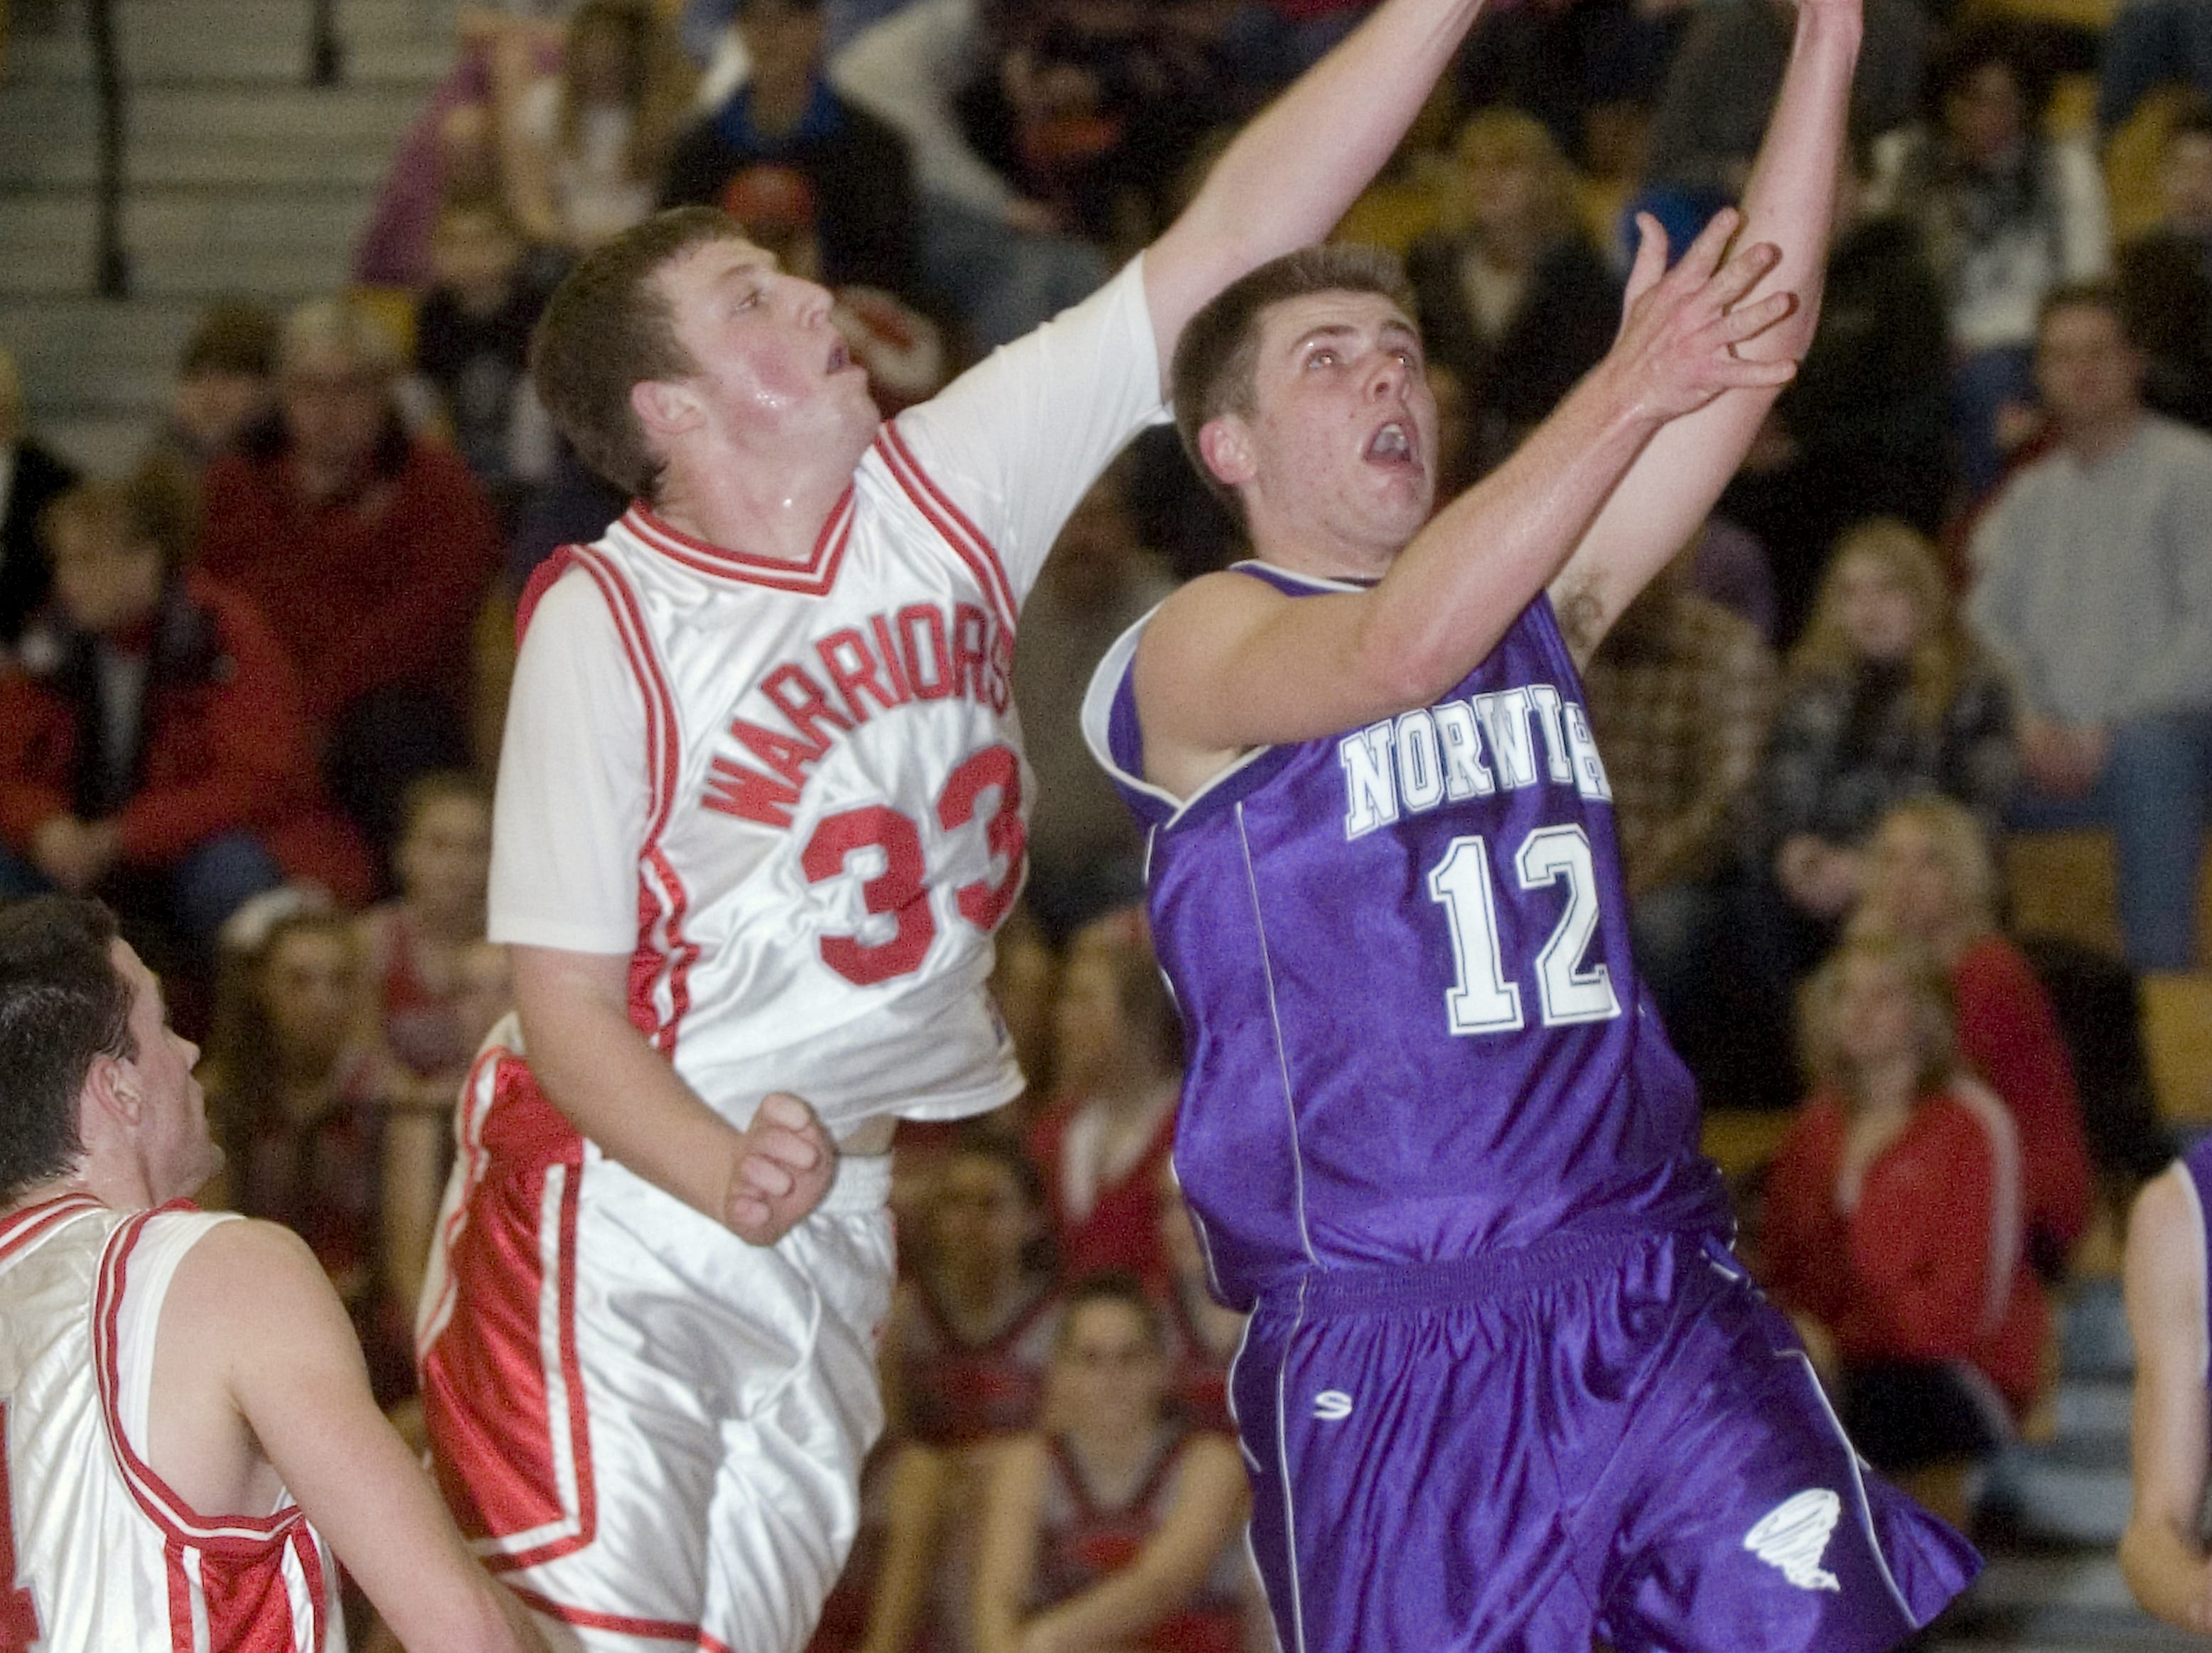 2010: Norwich's Joshua Borfitz, right, is blocked by Chenango Valley's Brian Wagstaff in the second quarter of Friday's game at CV.